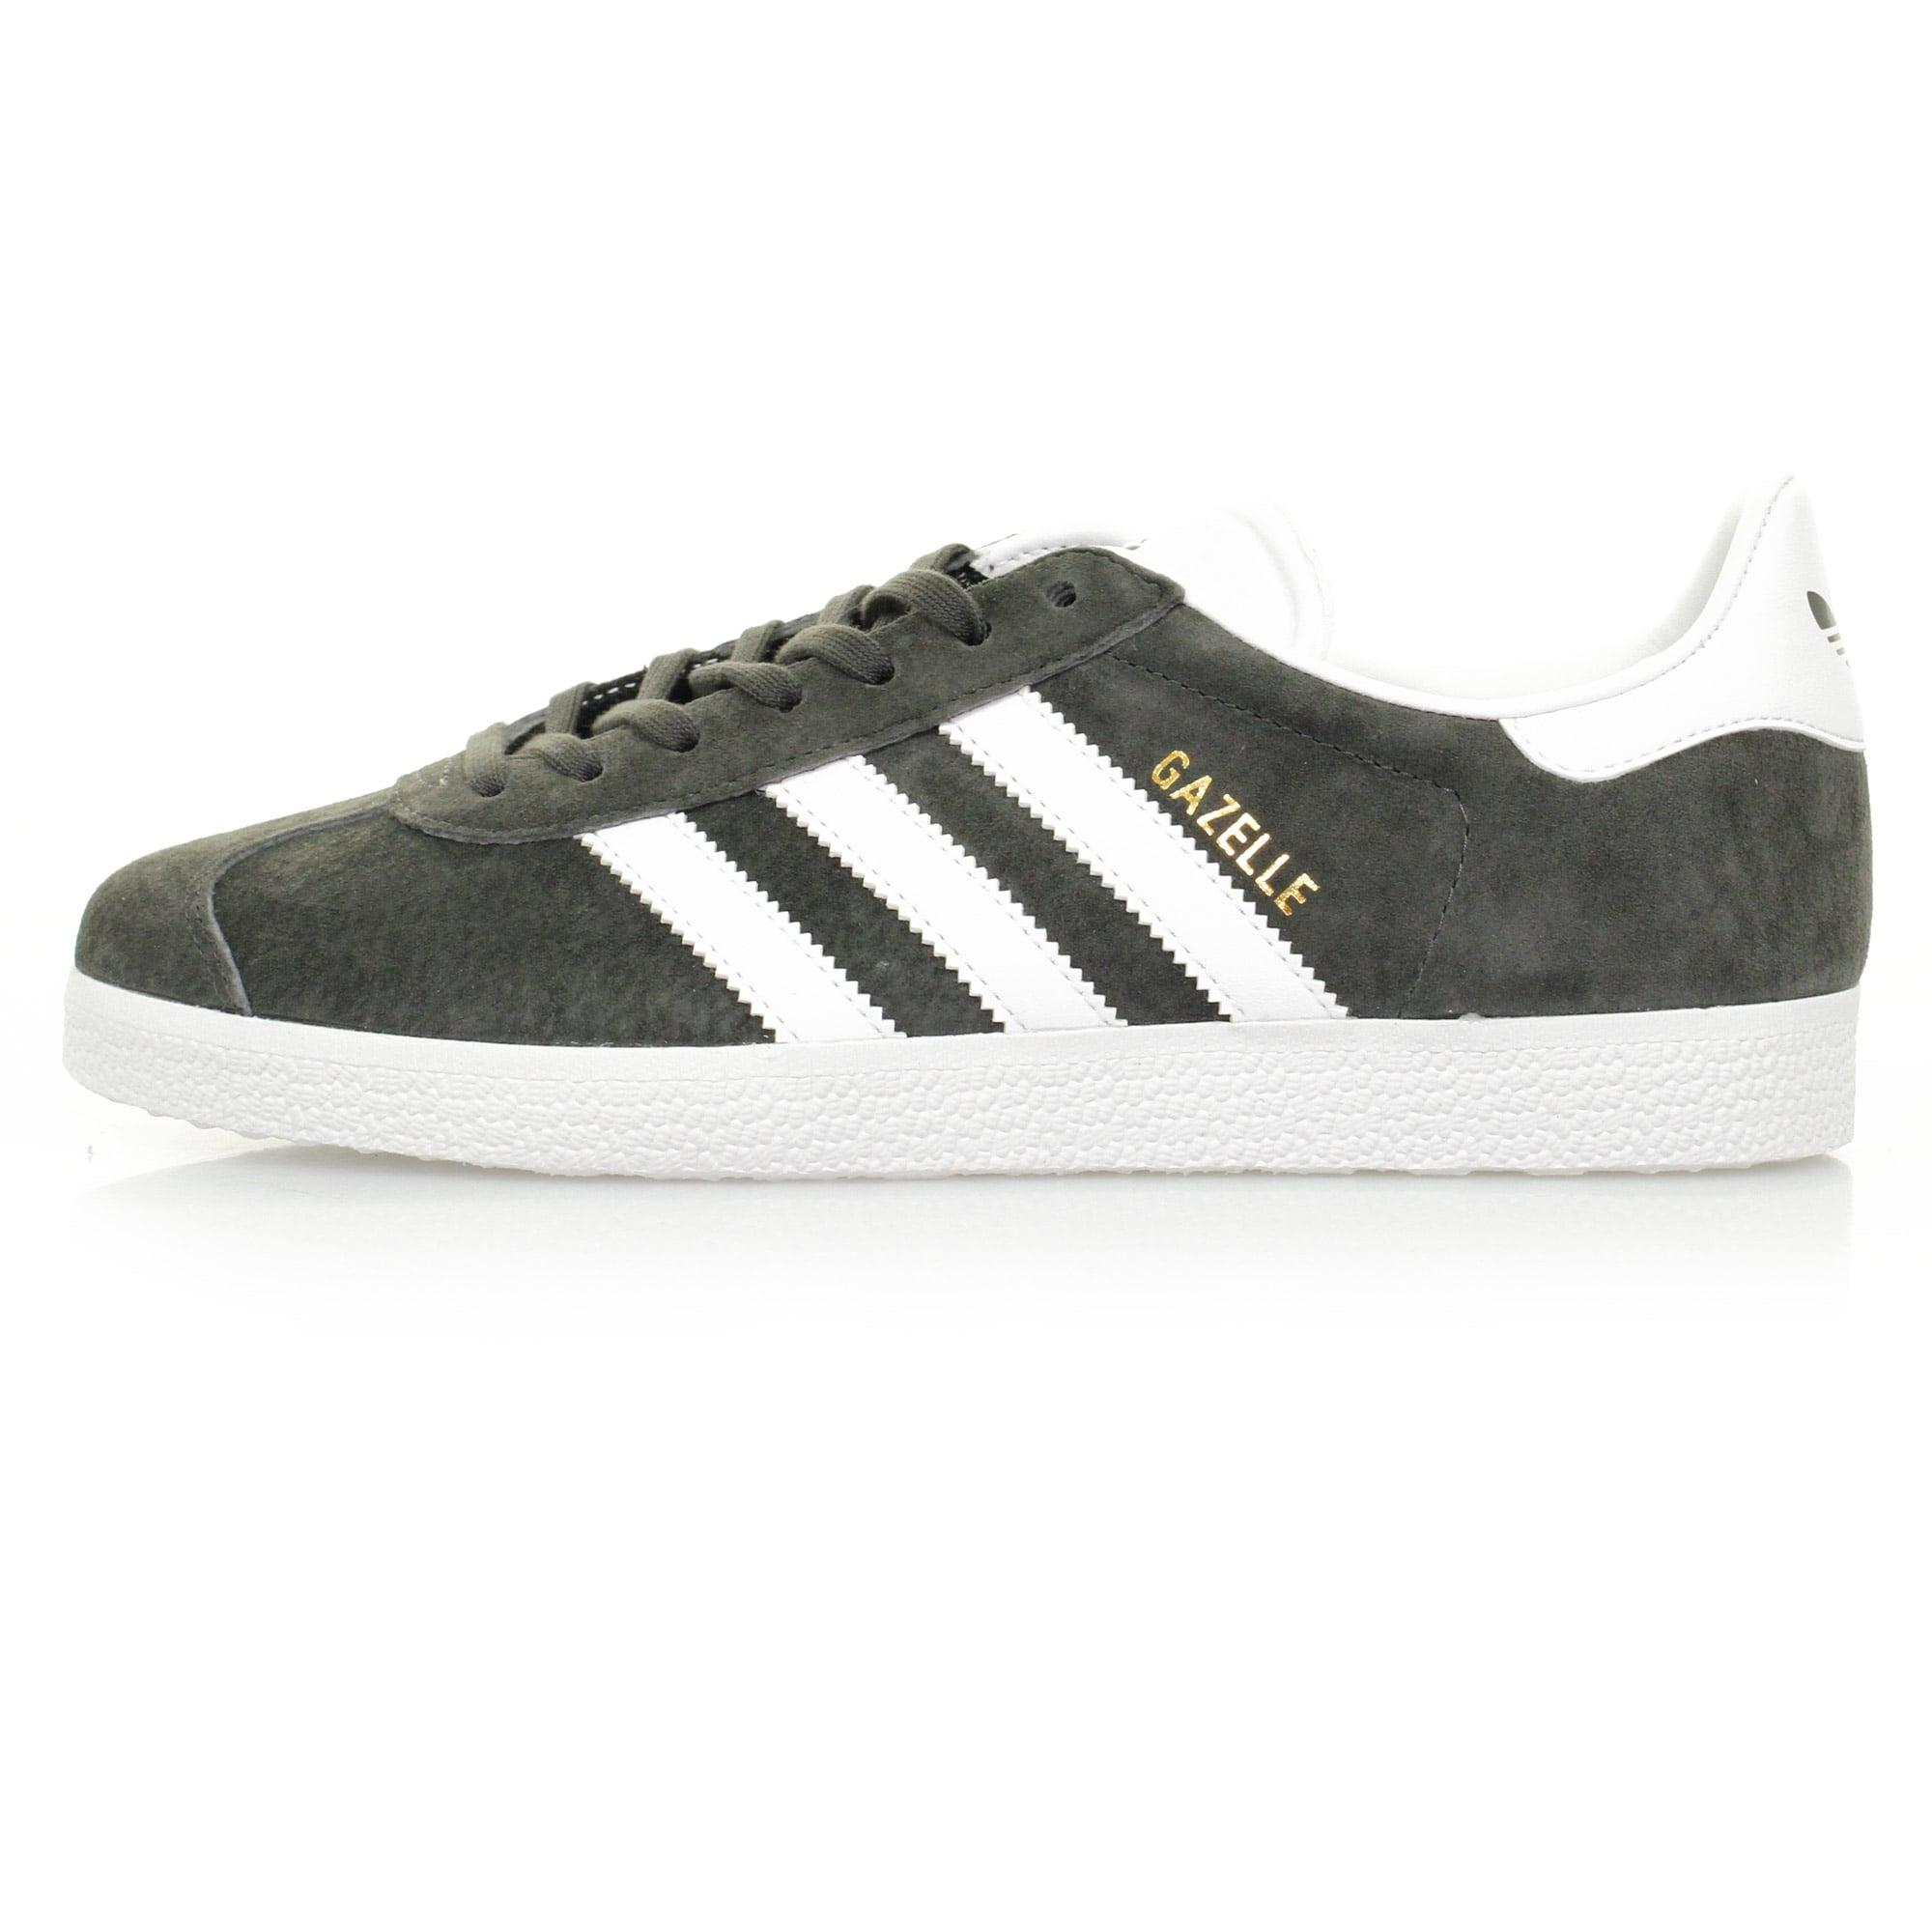 sports shoes 3356f c6d7e Lyst - Adidas Originals Adidas Gazelle Grey Suede Shoe in .